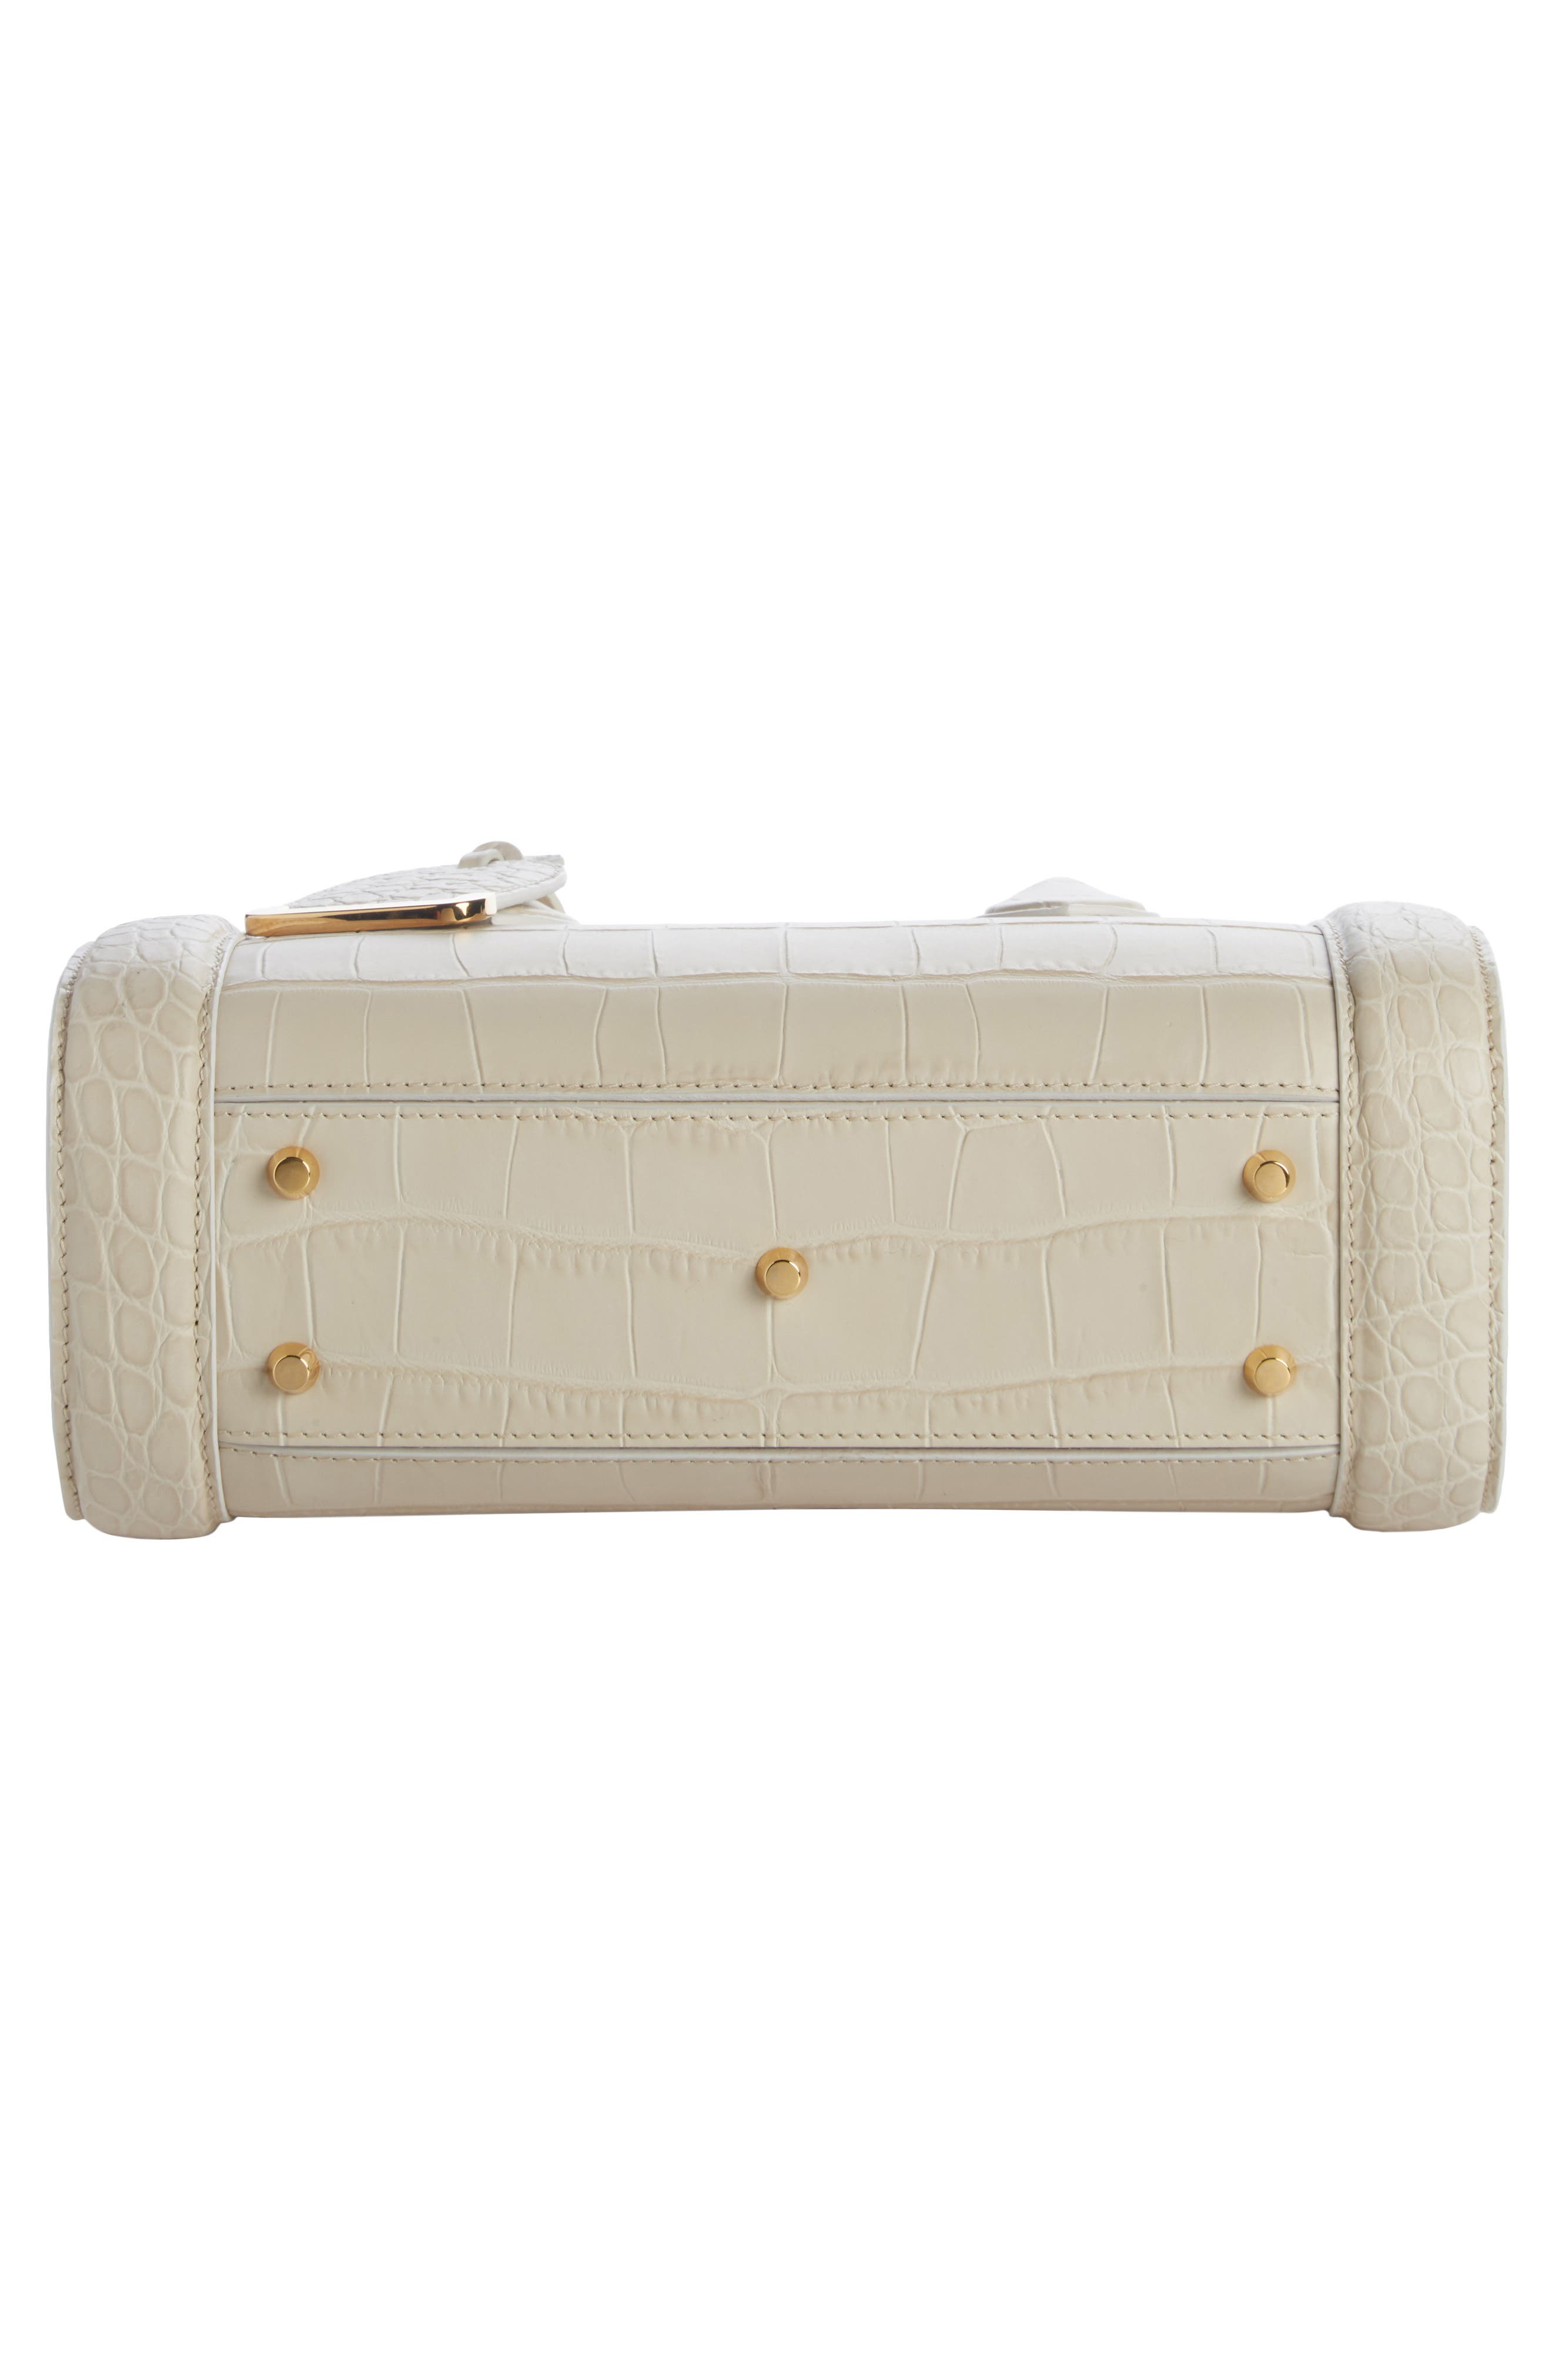 Heroine 30 Leather Satchel,                             Alternate thumbnail 4, color,                             White Bone